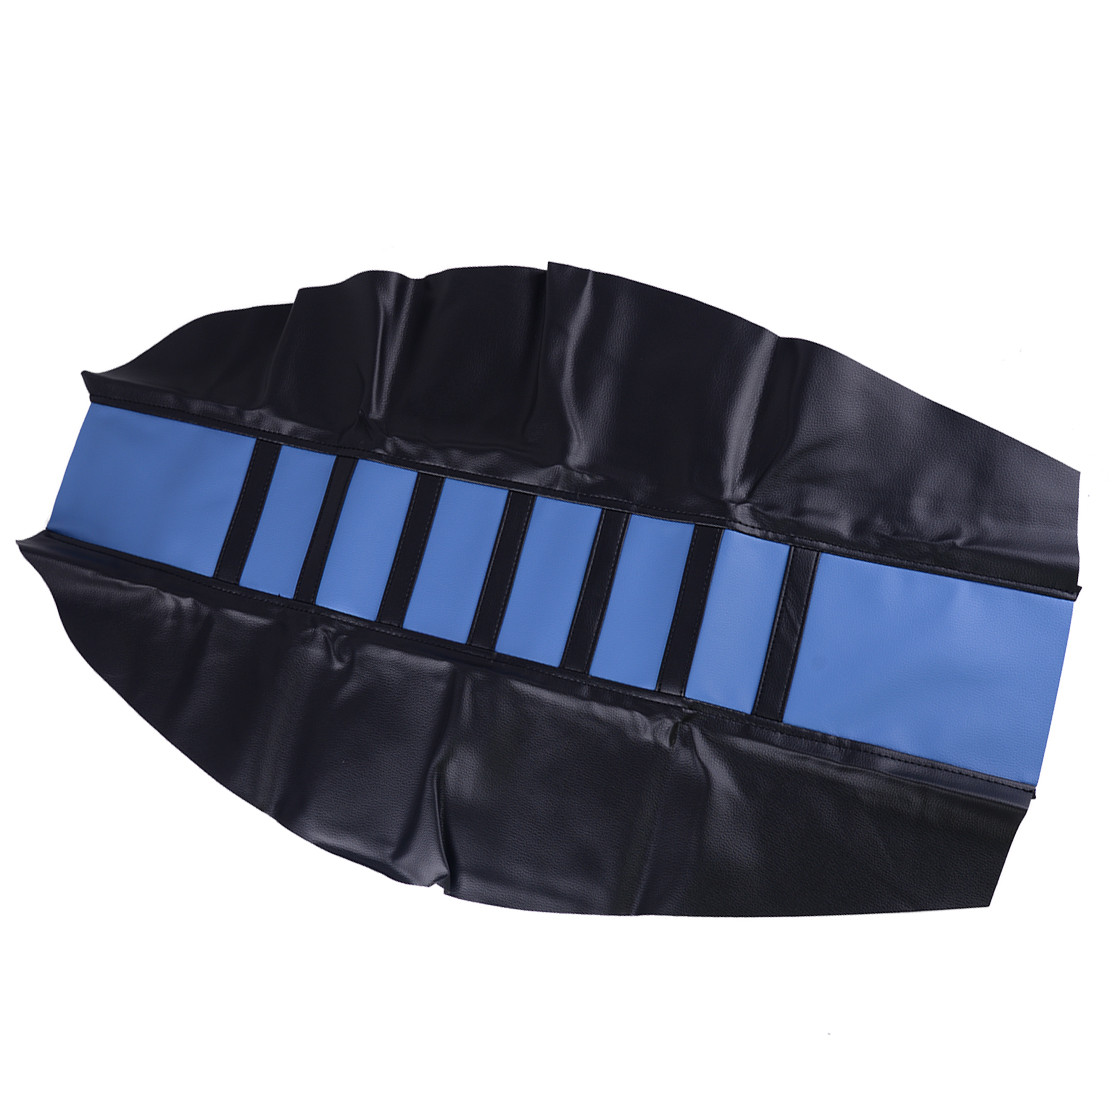 Blue Color Motorcycle Gripper Seat Cover Rubber Soft Skin Covers For Yamaha YZ 85 YZ85 2002-2017 02-17 Dirt Pit Bike Off Road